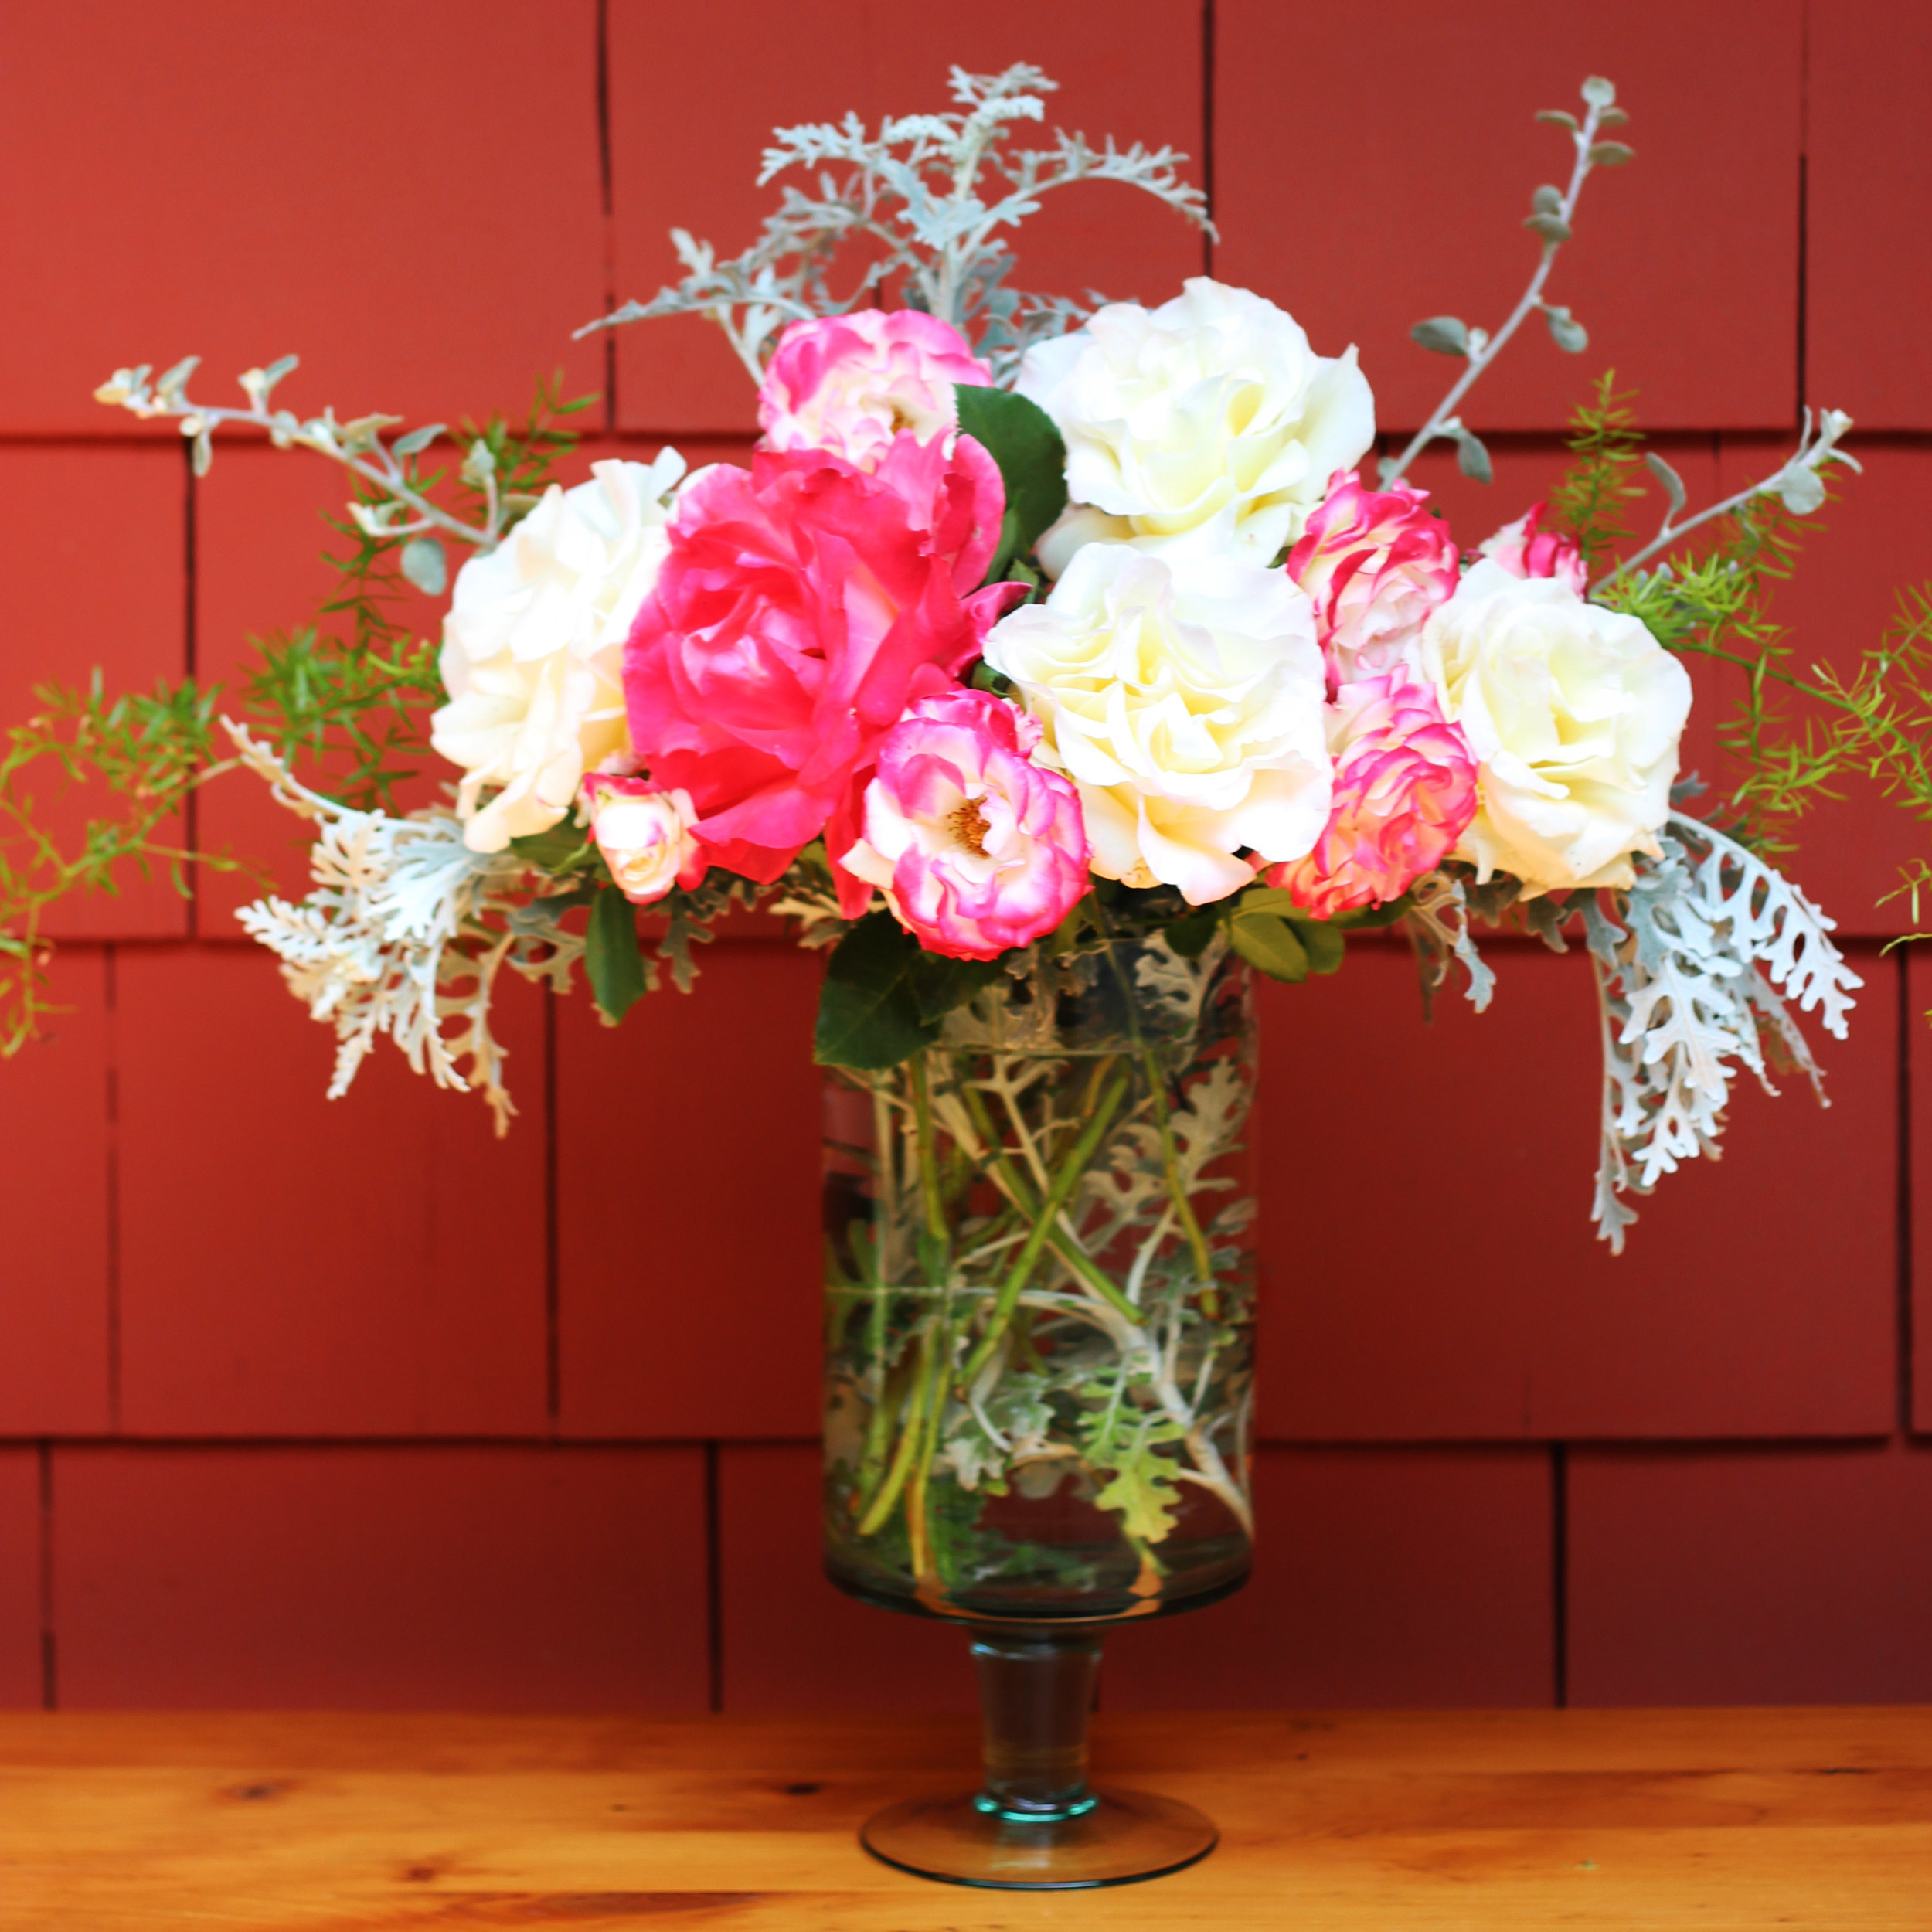 Add focal point flower (fuchsia rose) to lower left.